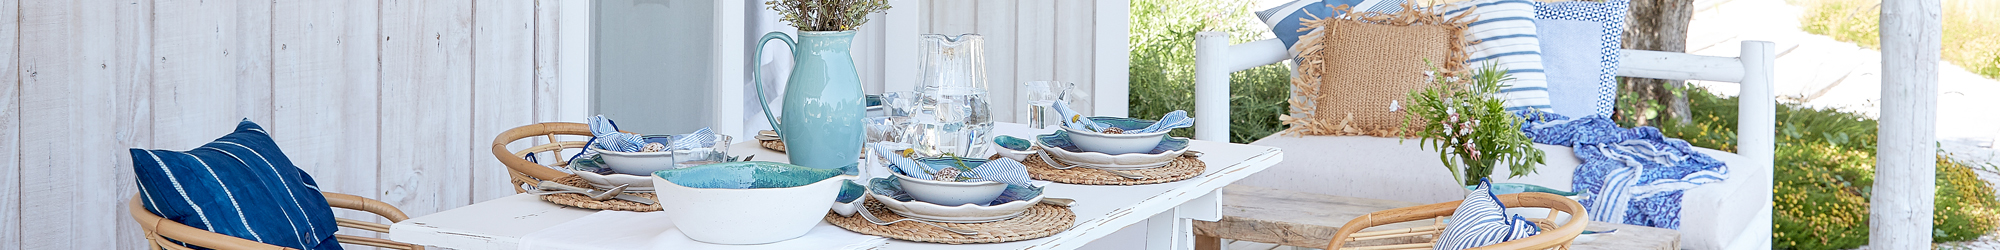 Casafina Dori Dinnerware Collection